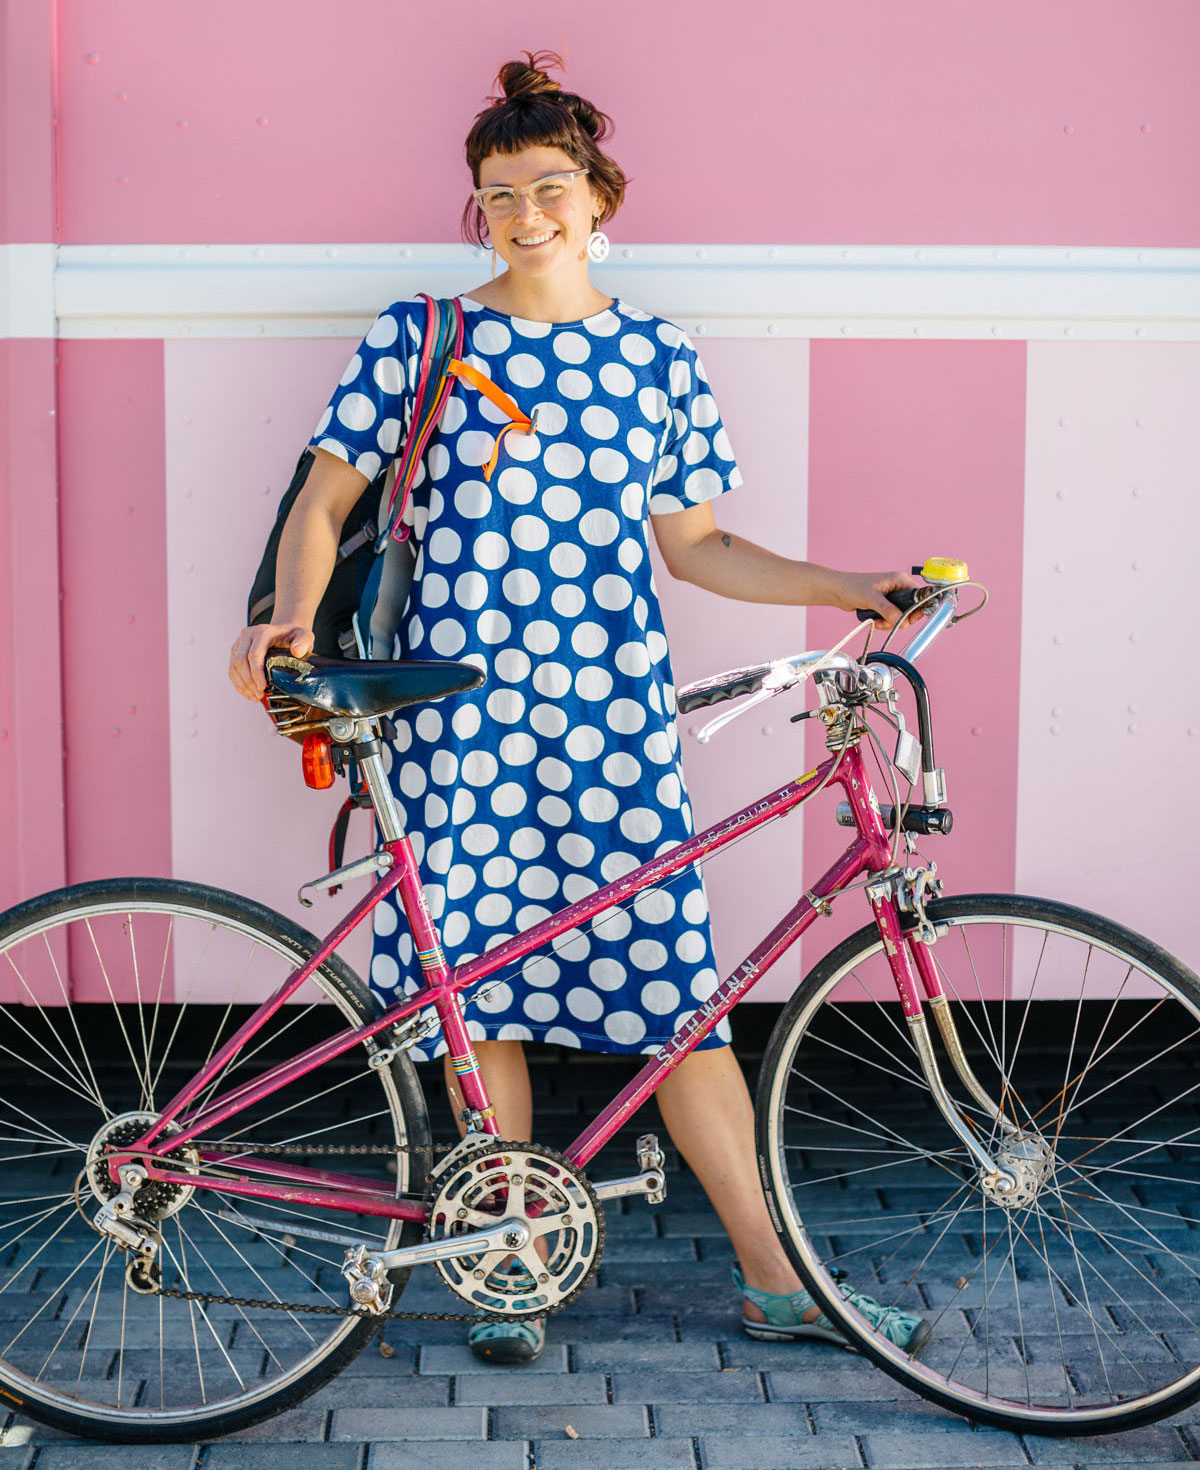 Woman holding bicycle and wearing a blue dress with white polka dots